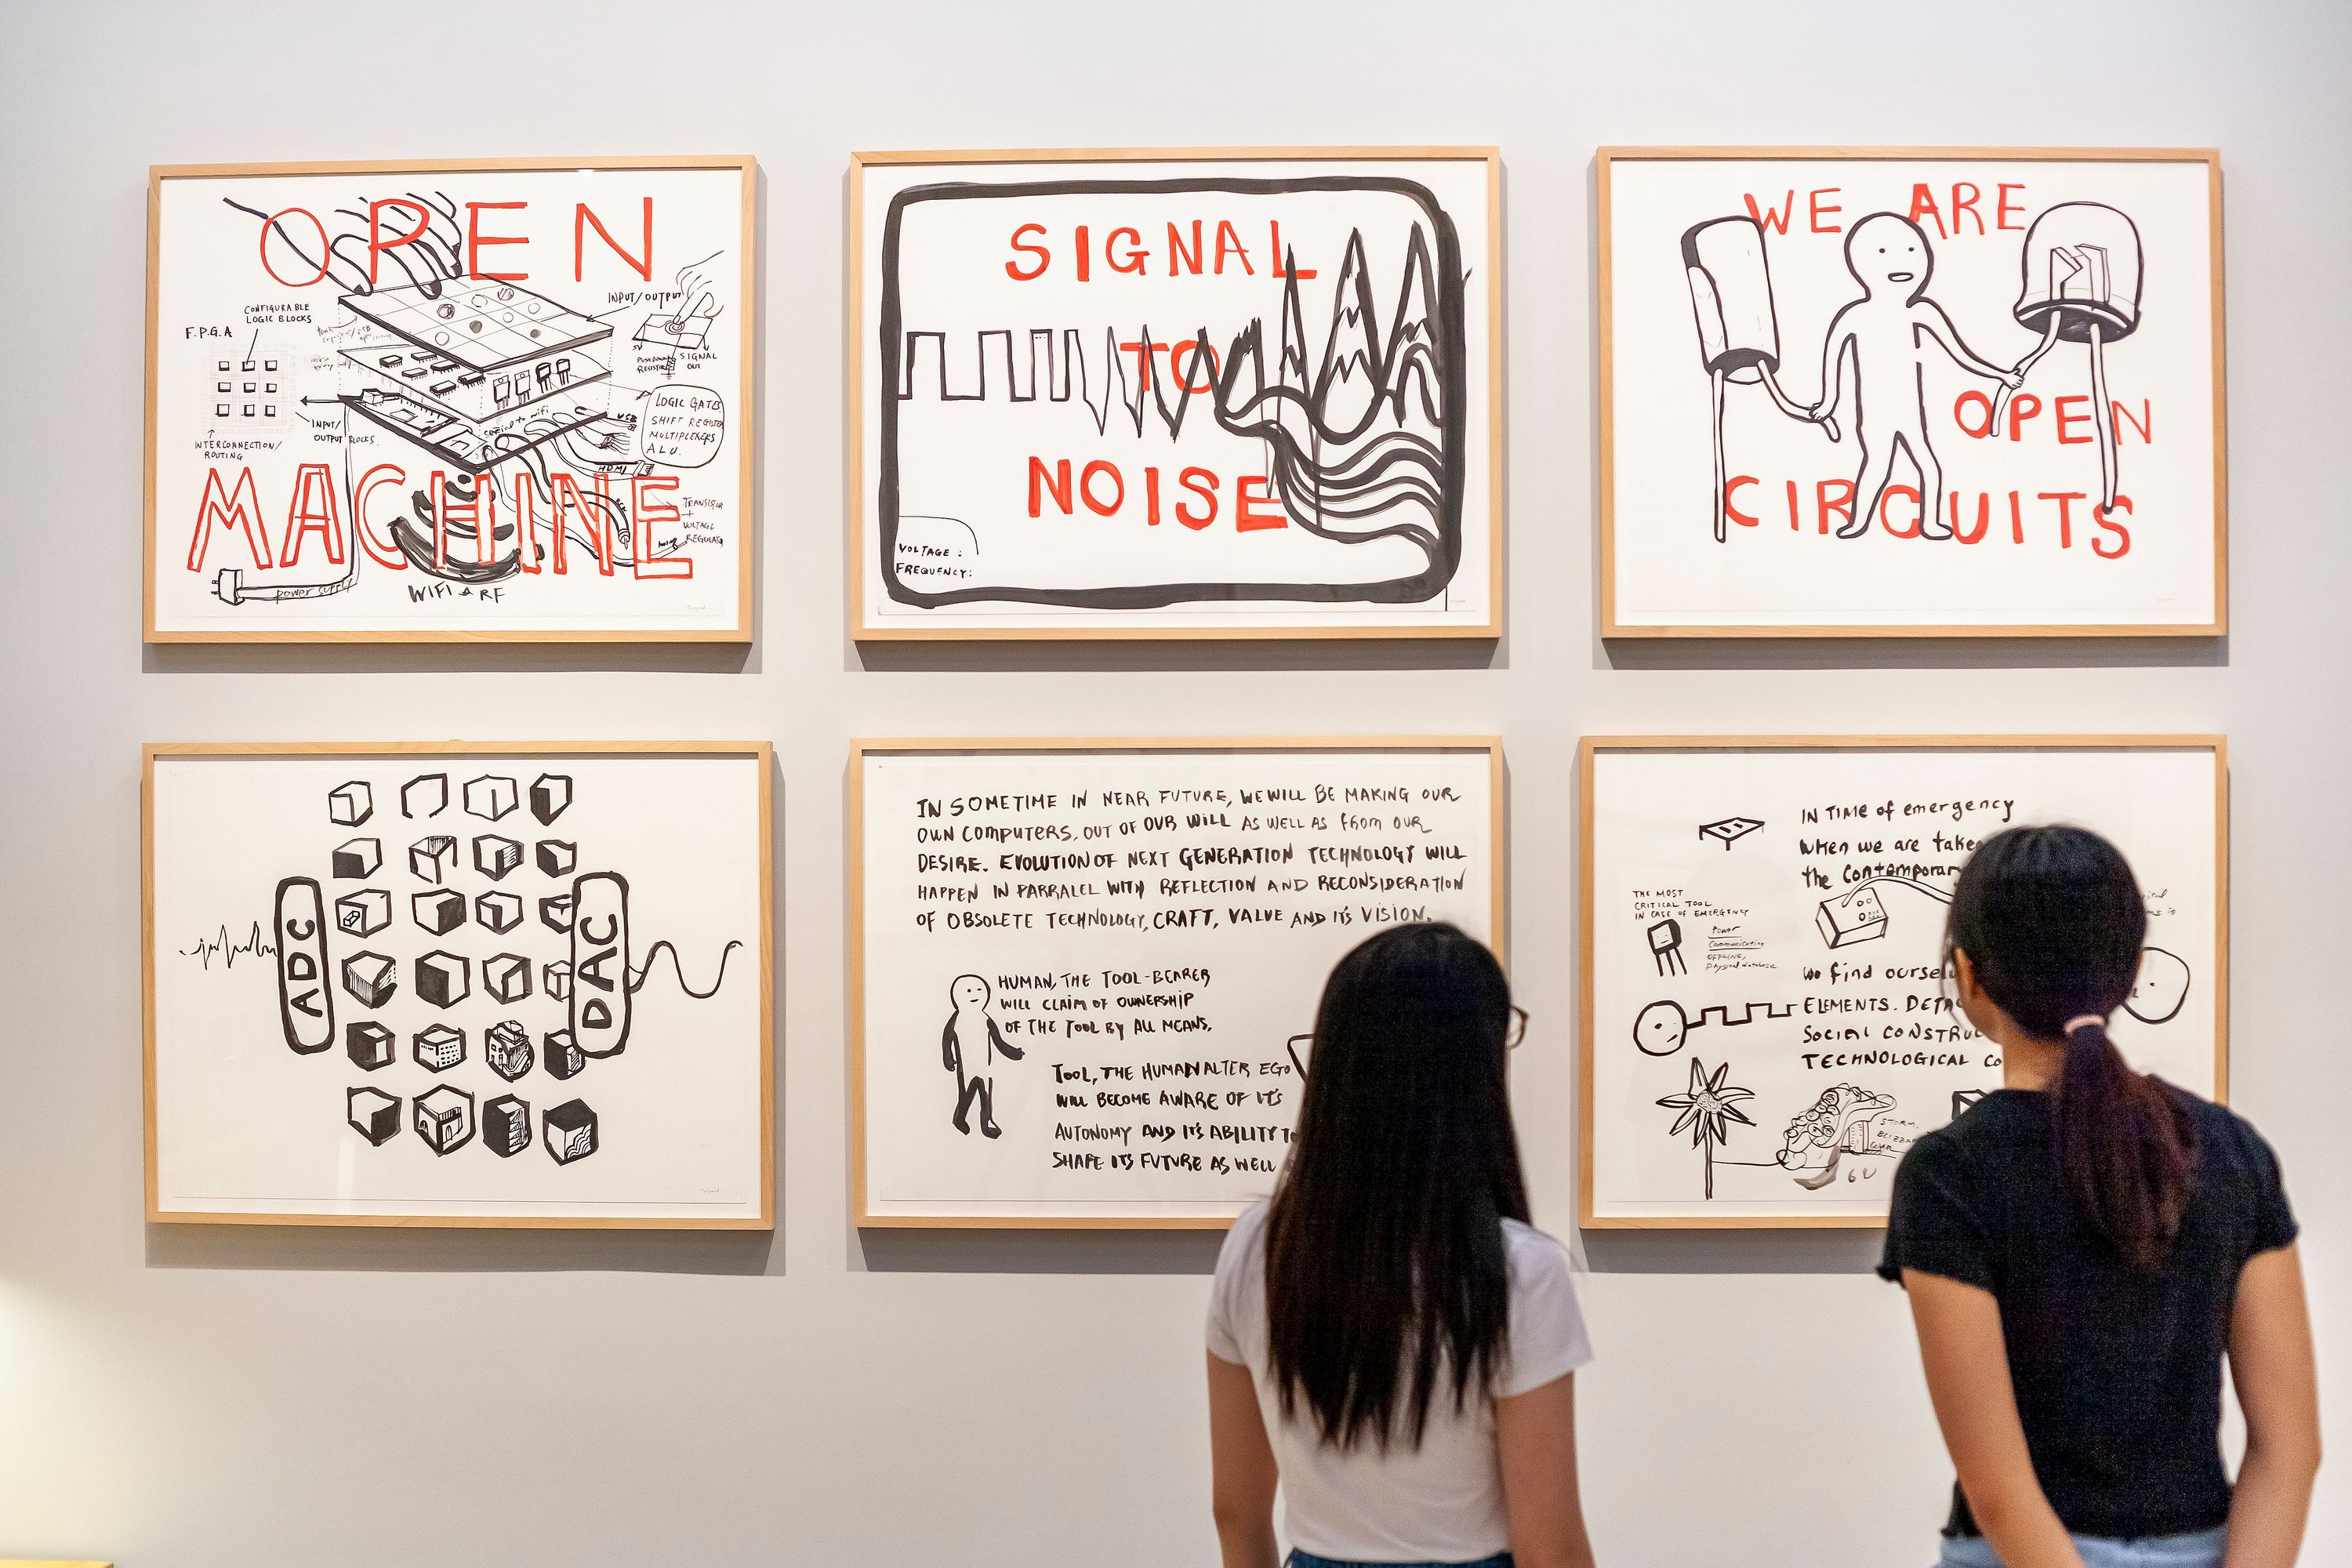 """Two women, both with long brown hair, stand with their backs to the camera. They are looking at Taeyoon's art hanging on a gallery wall. One artwork says """"OPEN MACHINE"""" and shows technical drawings, another says """"WE ARE OPEN CIRCUITS"""" and depicts a simple character connecting two nodes."""